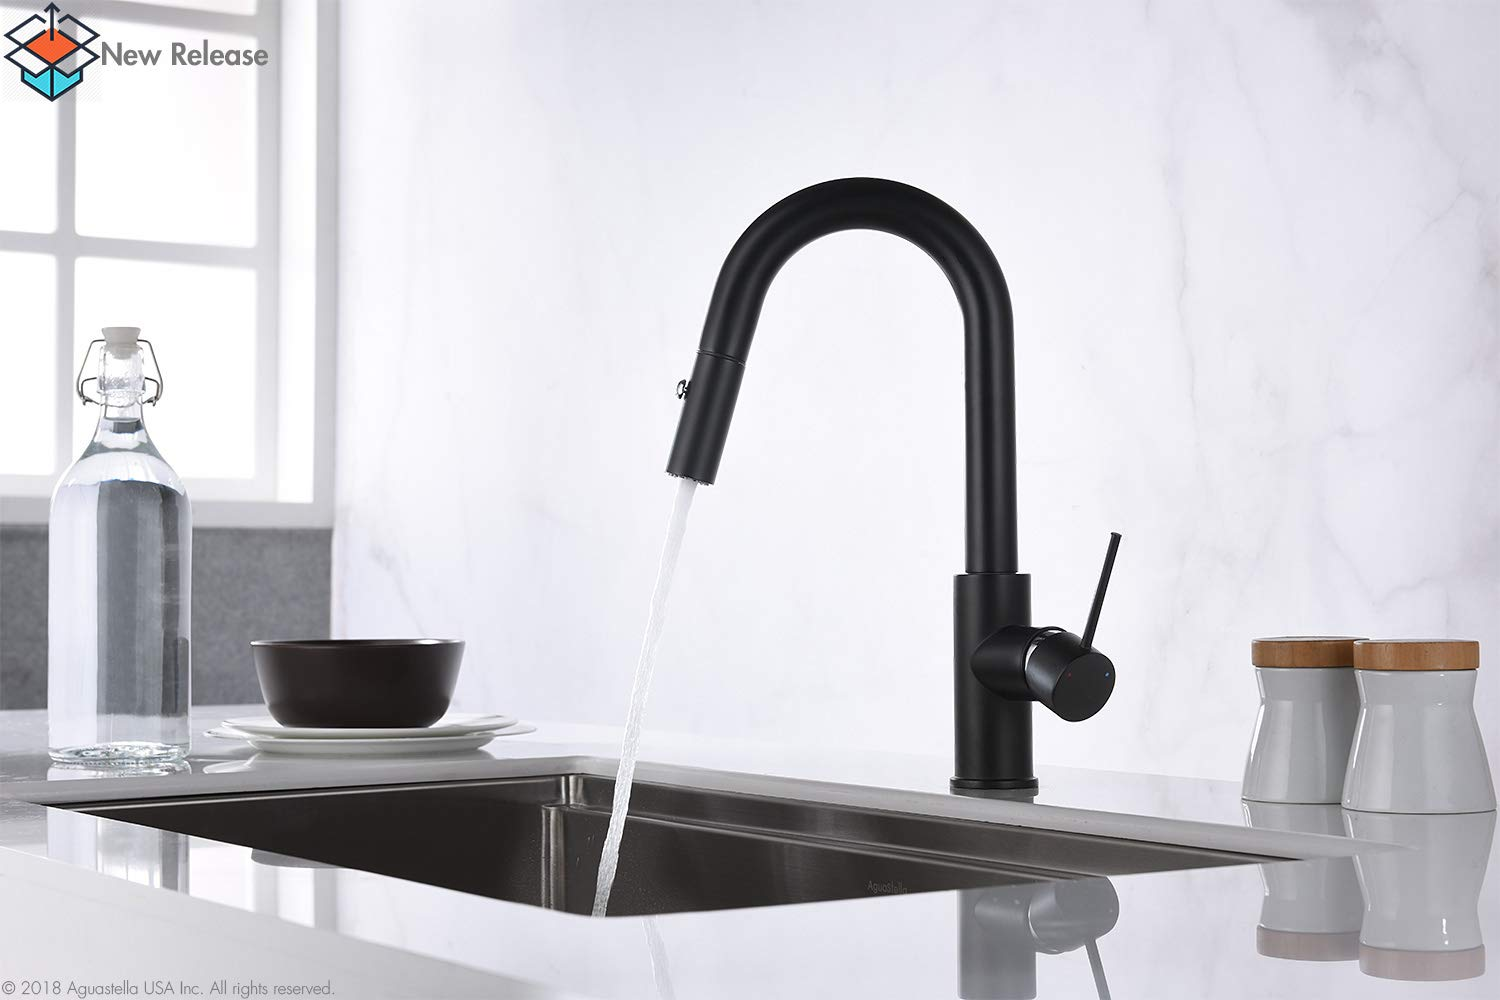 AguaStella AS59MB Matte Black Bar Faucet or Prep Kitchen Sink Faucet with Pull Down Sprayer and Single Handle